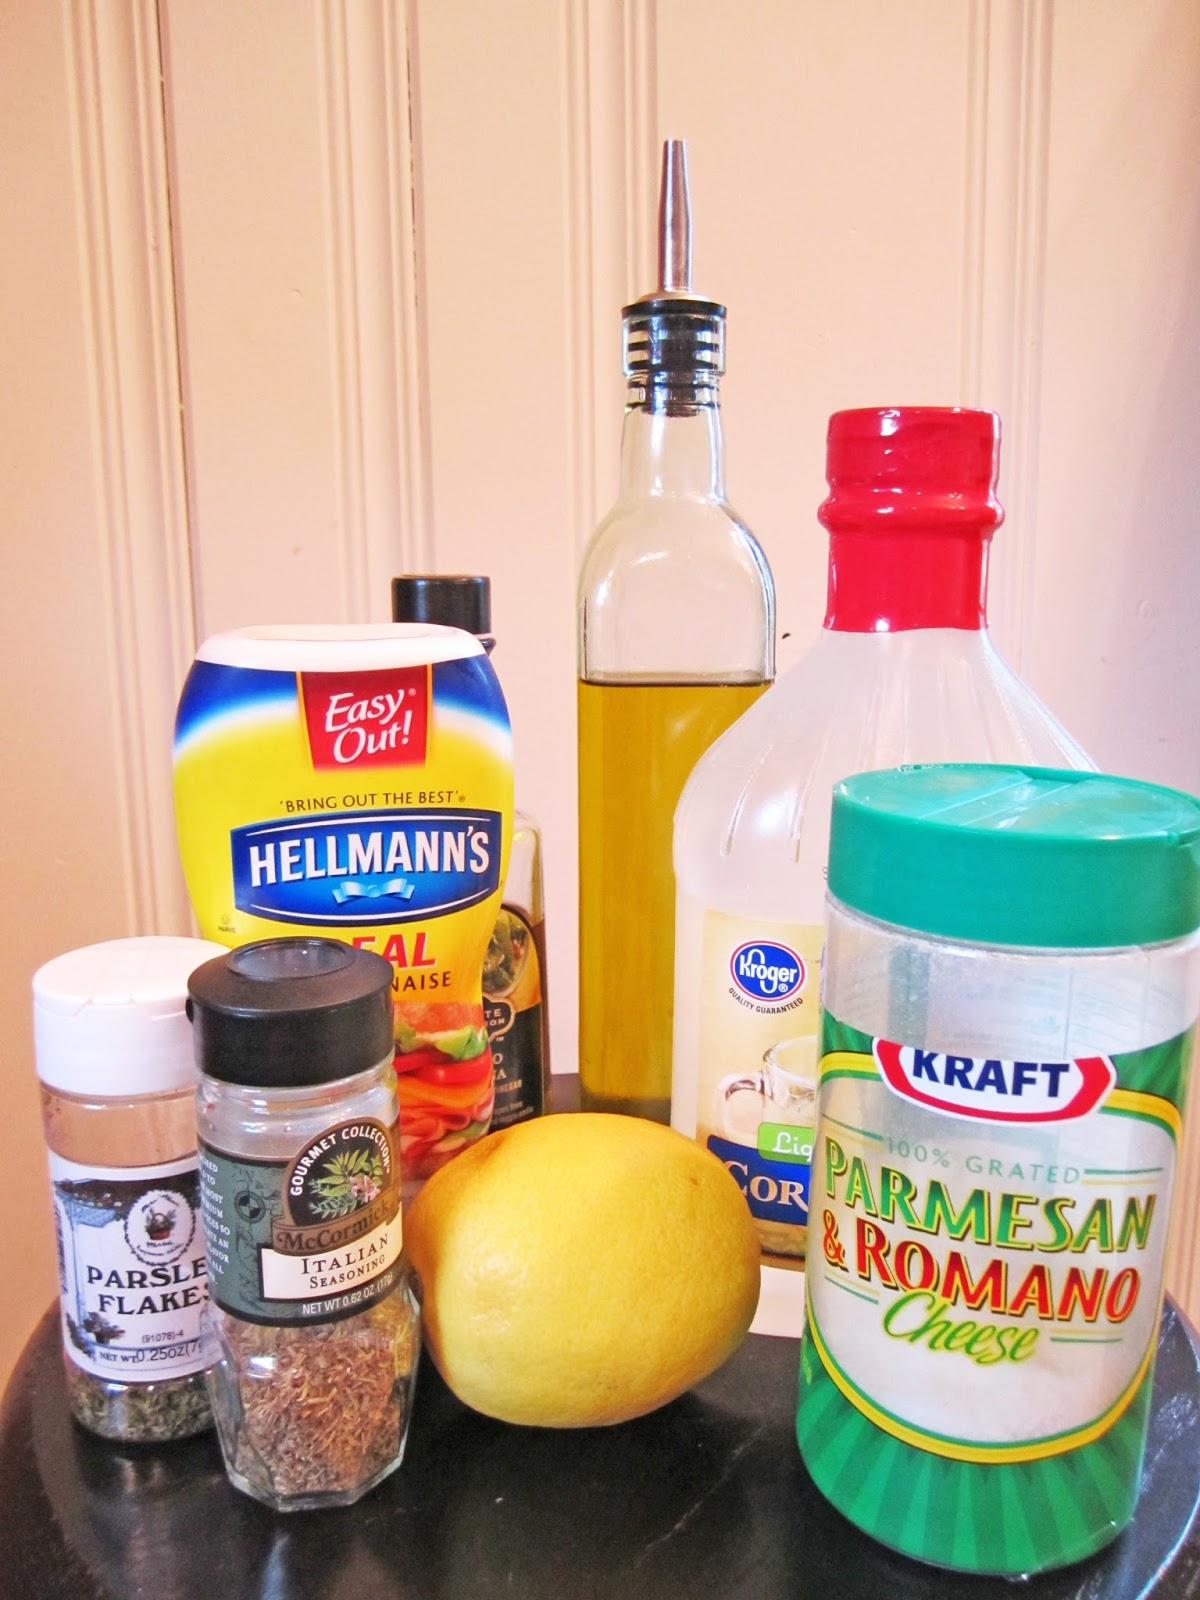 Tales From A Cottage Olive Garden Dressing Copycat Recipe